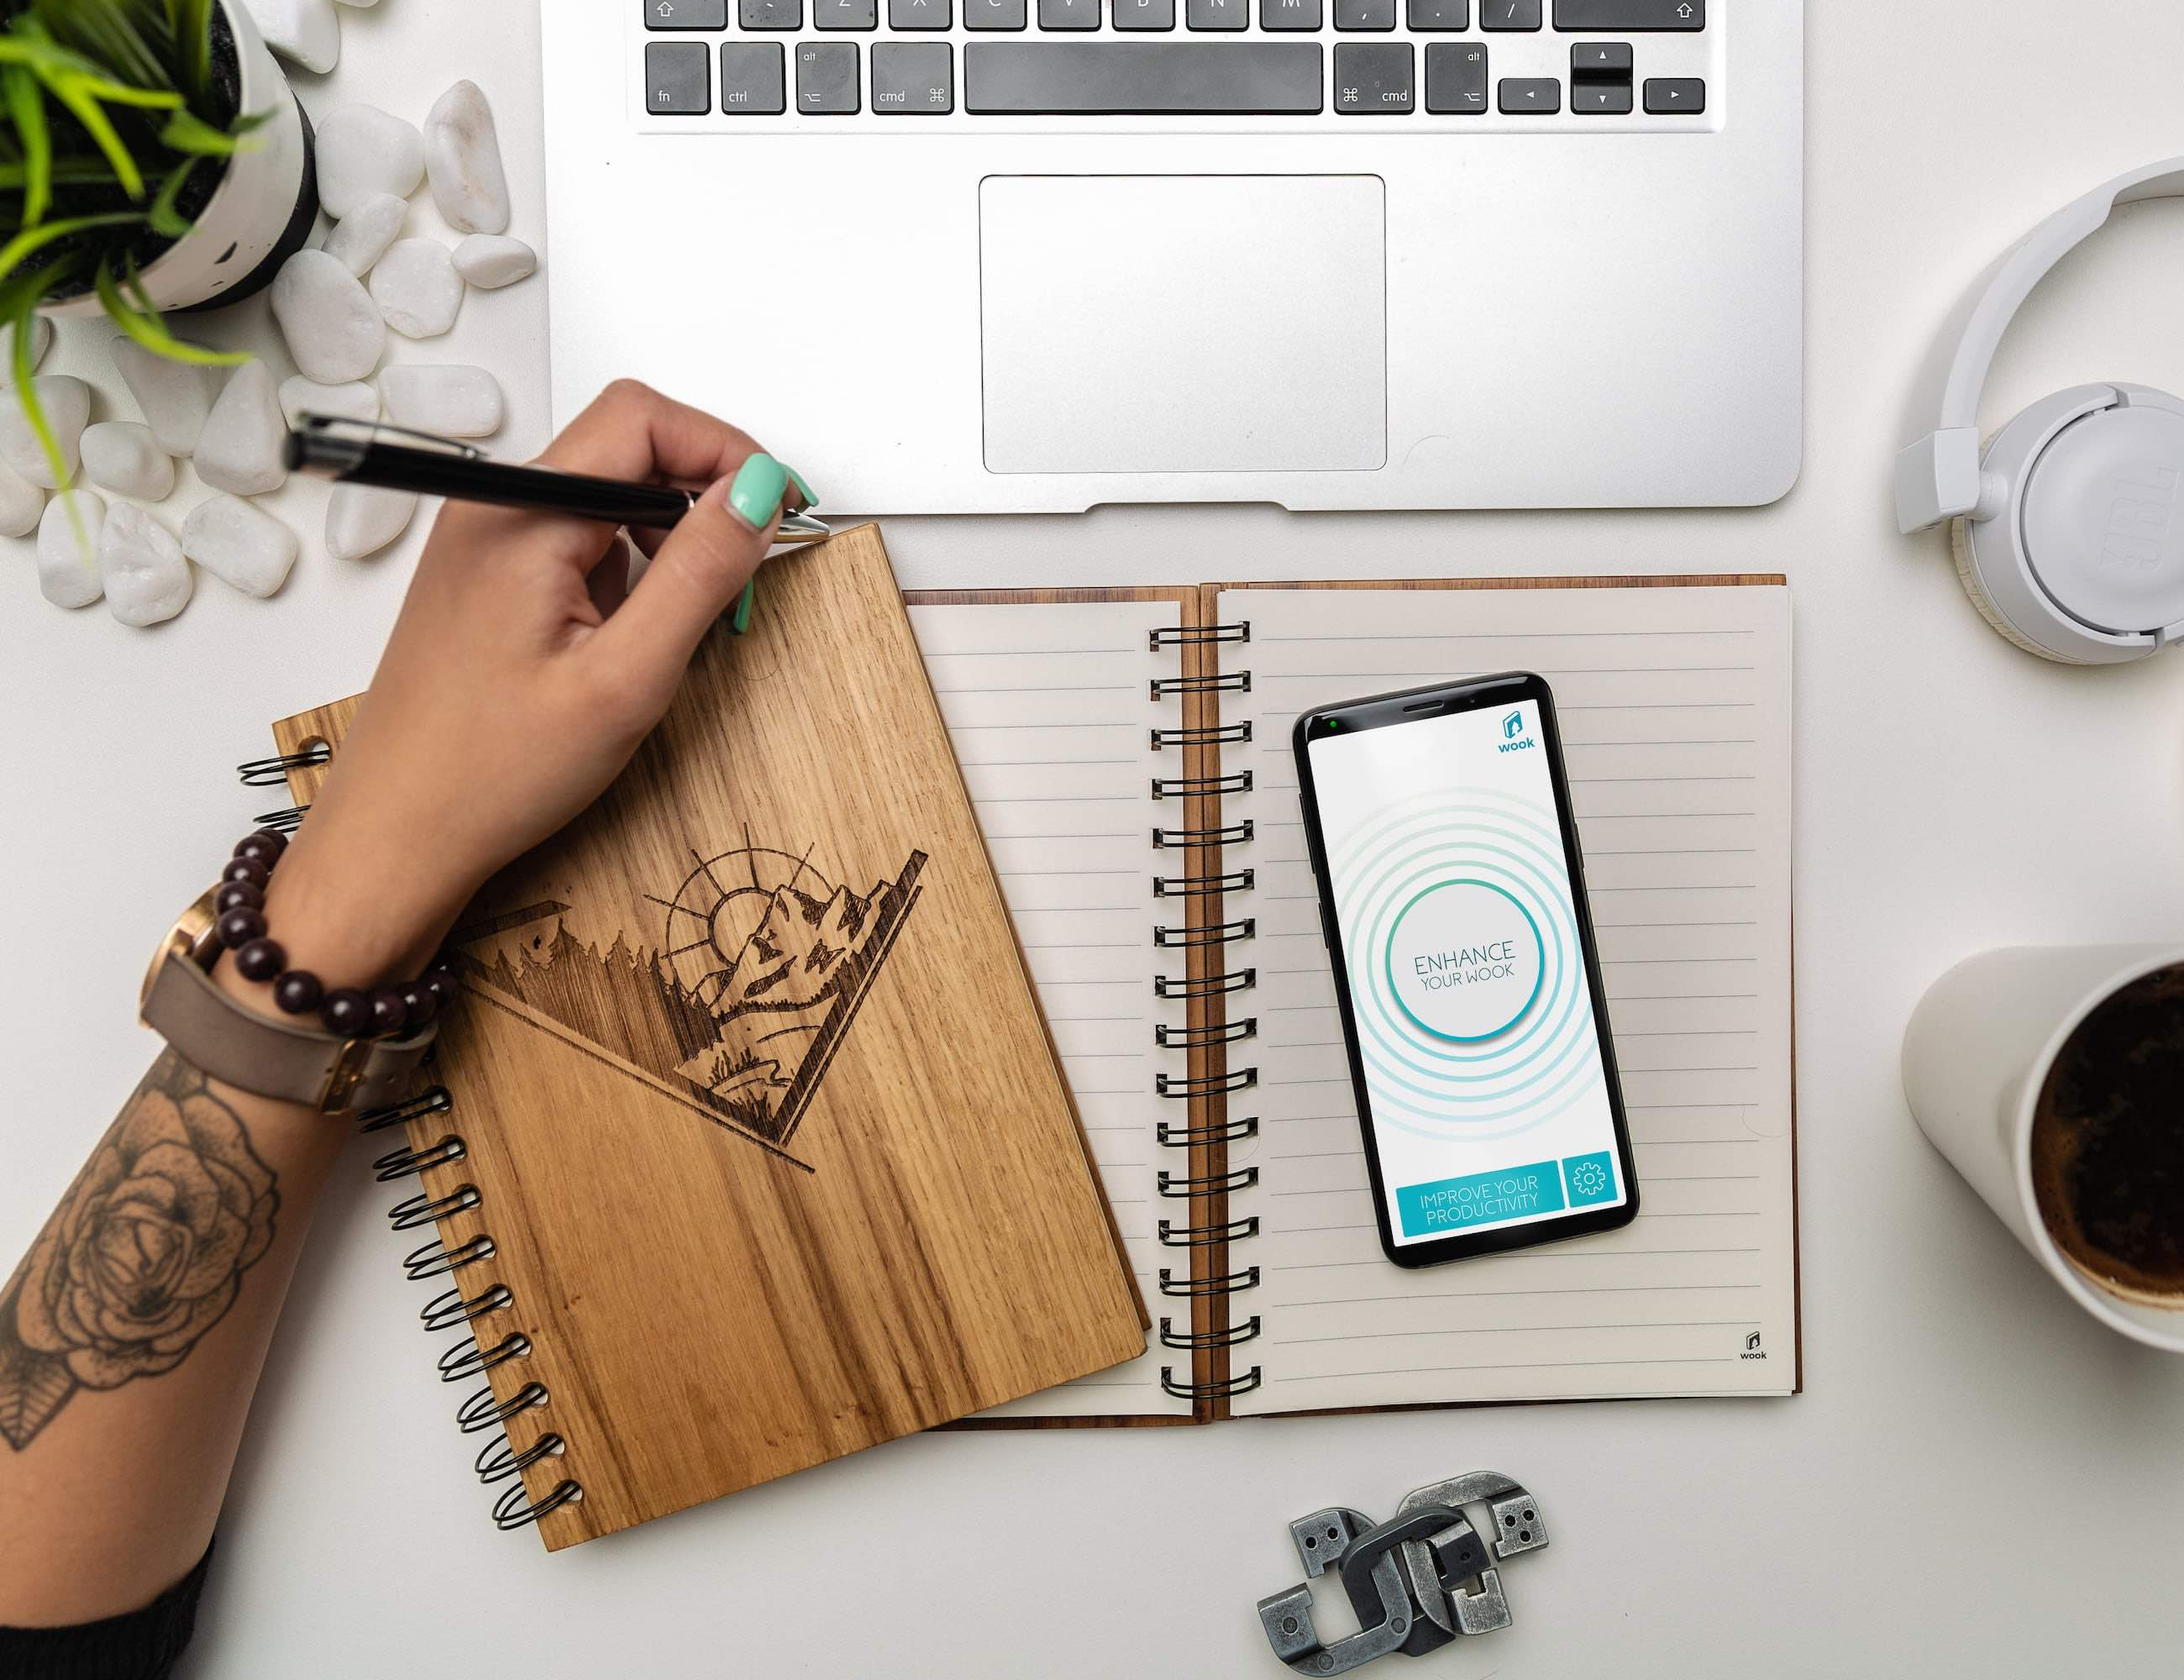 WOOK notes Smart Wooden Notebook